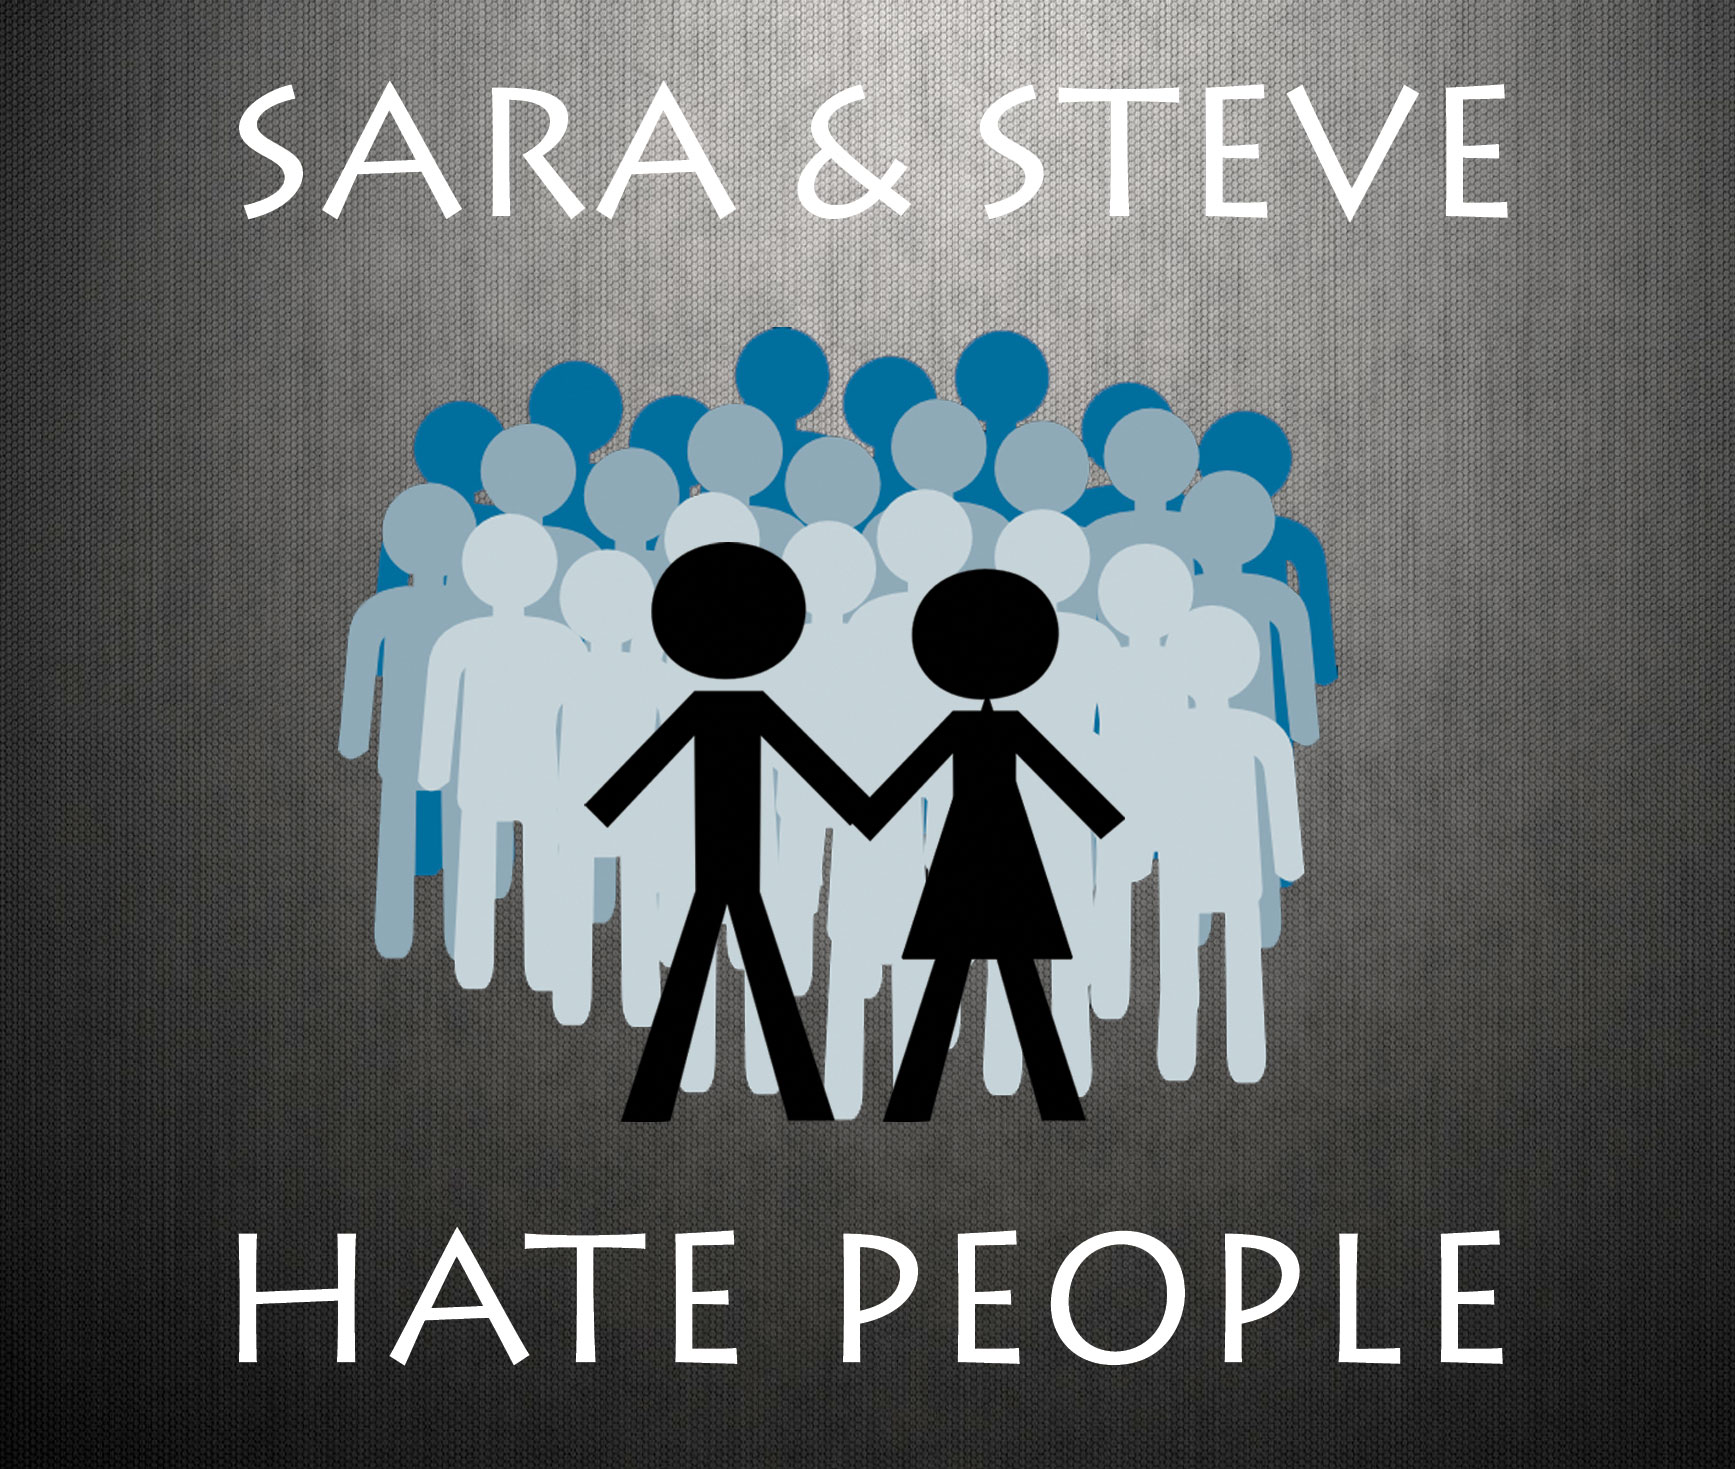 Sara and Steve Hate People